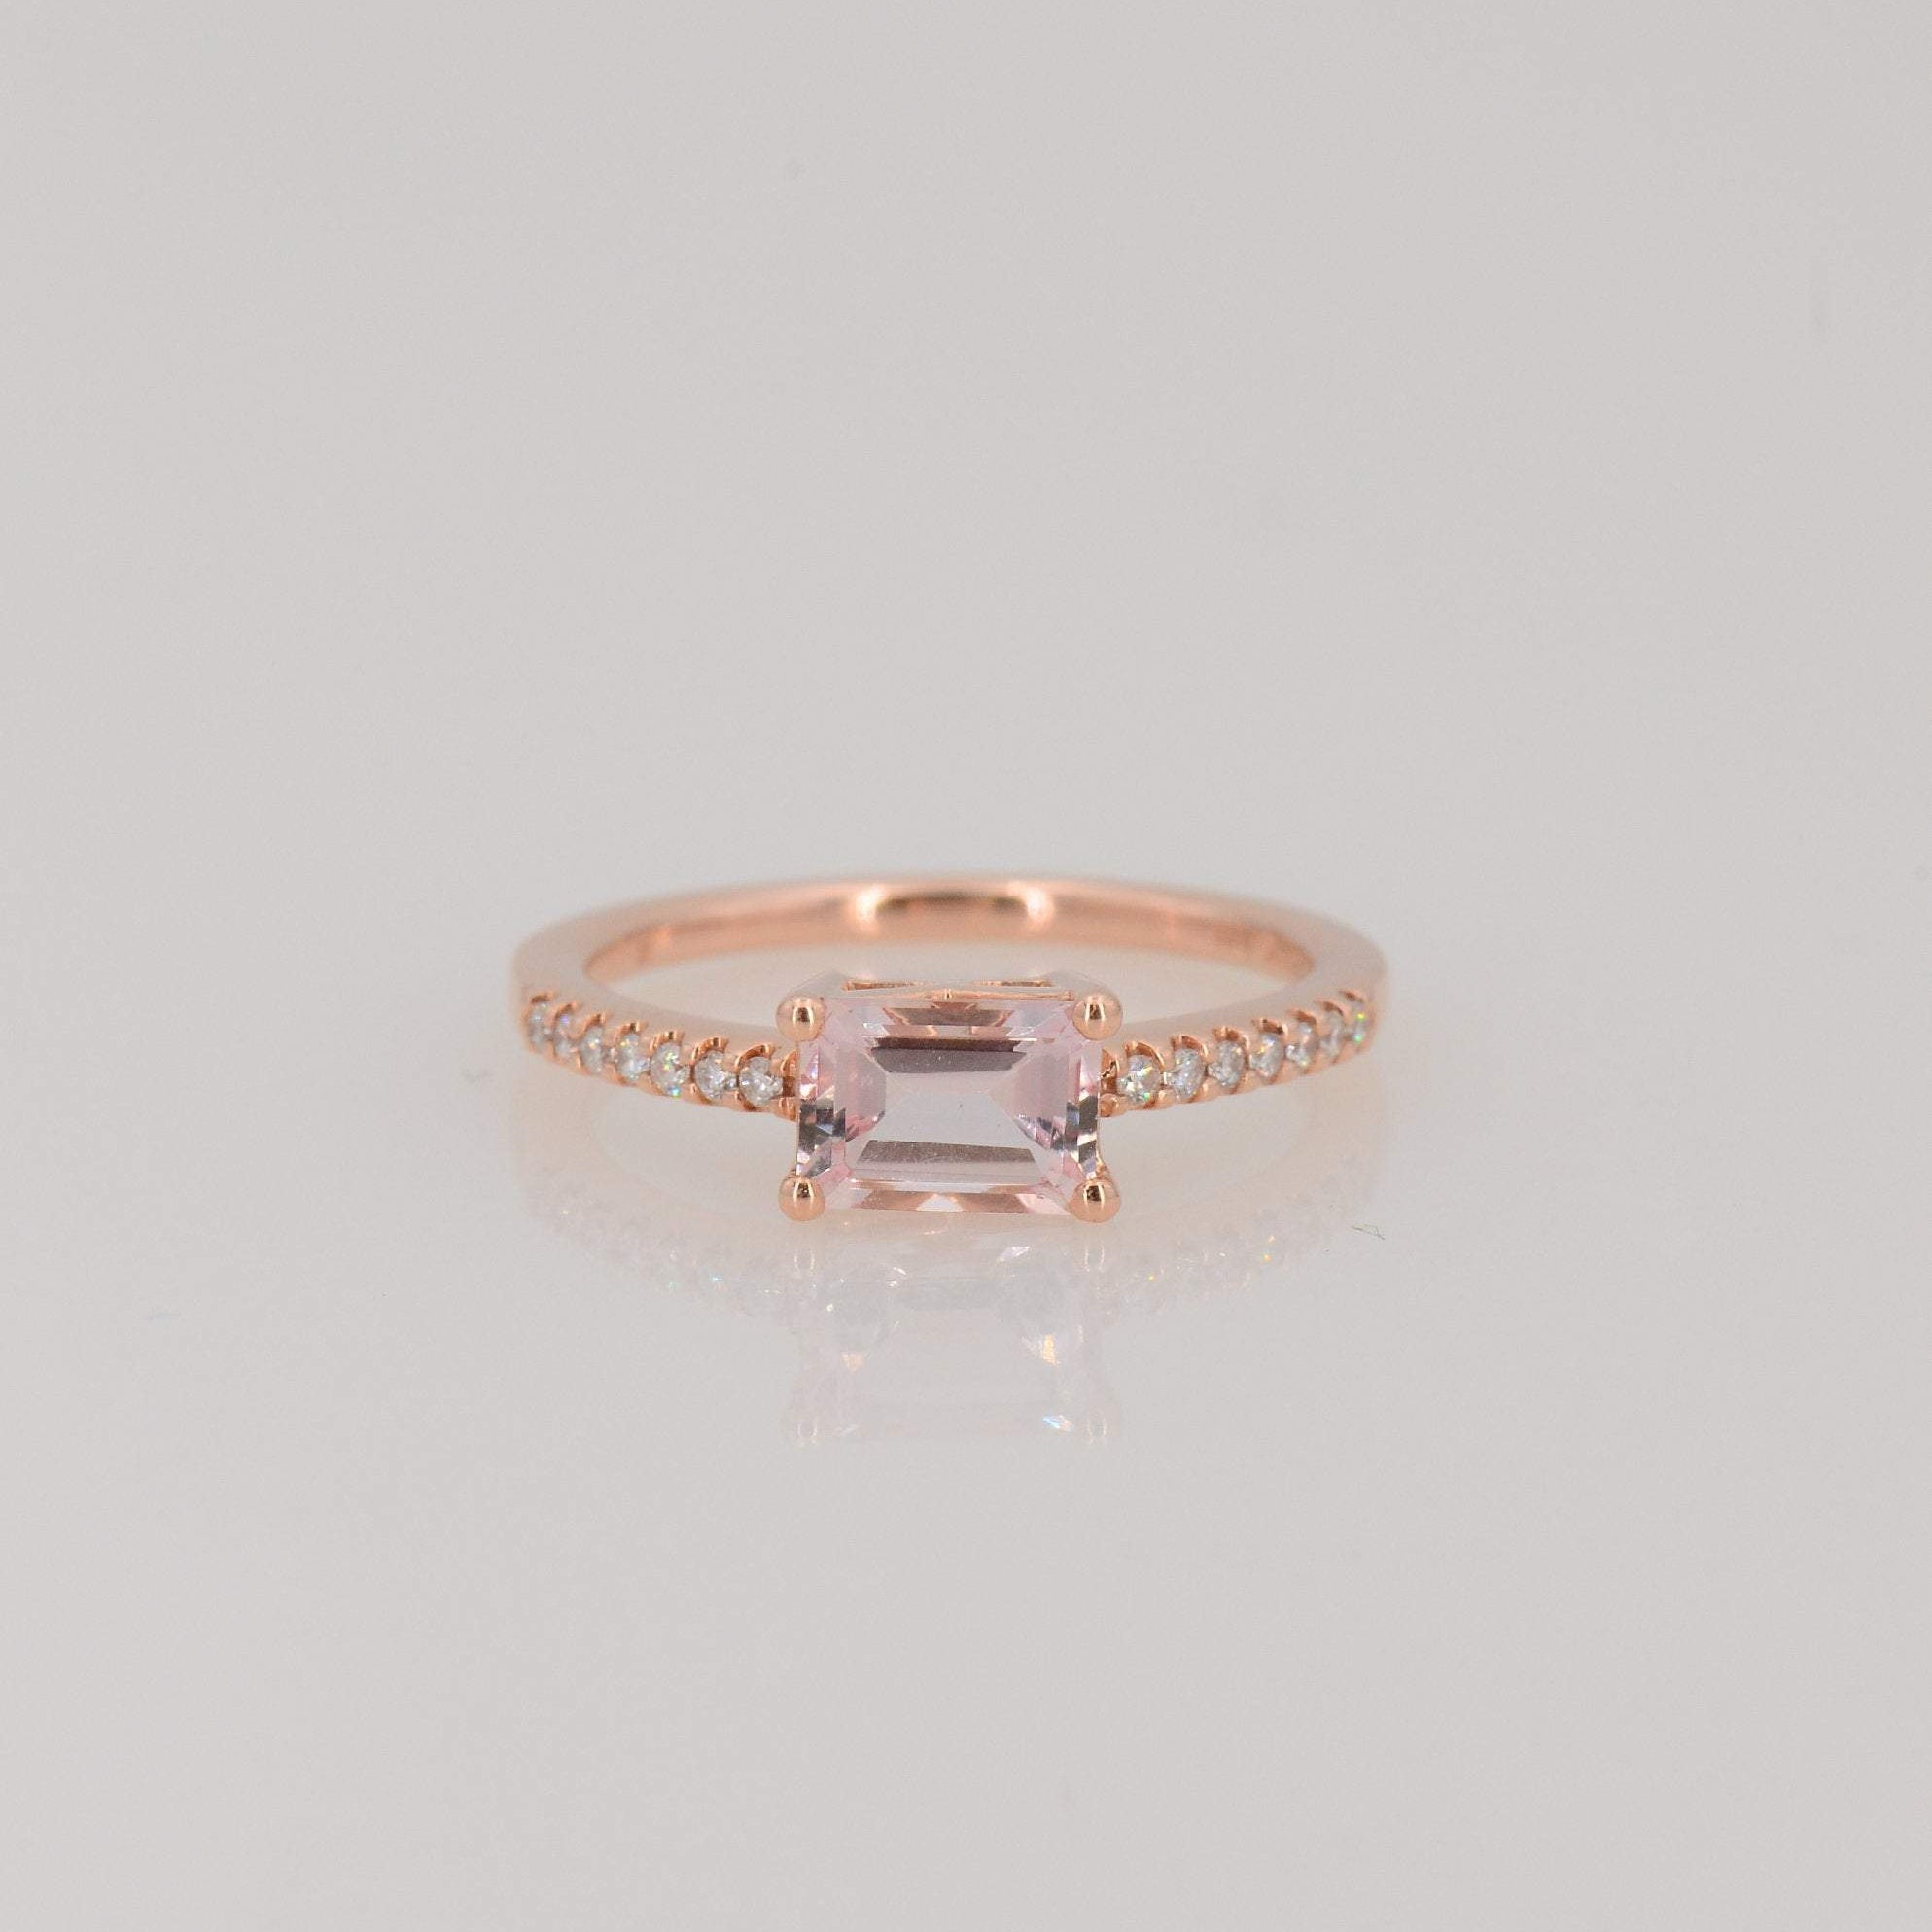 Morganite Solitaire ring, Diamond and Morganite